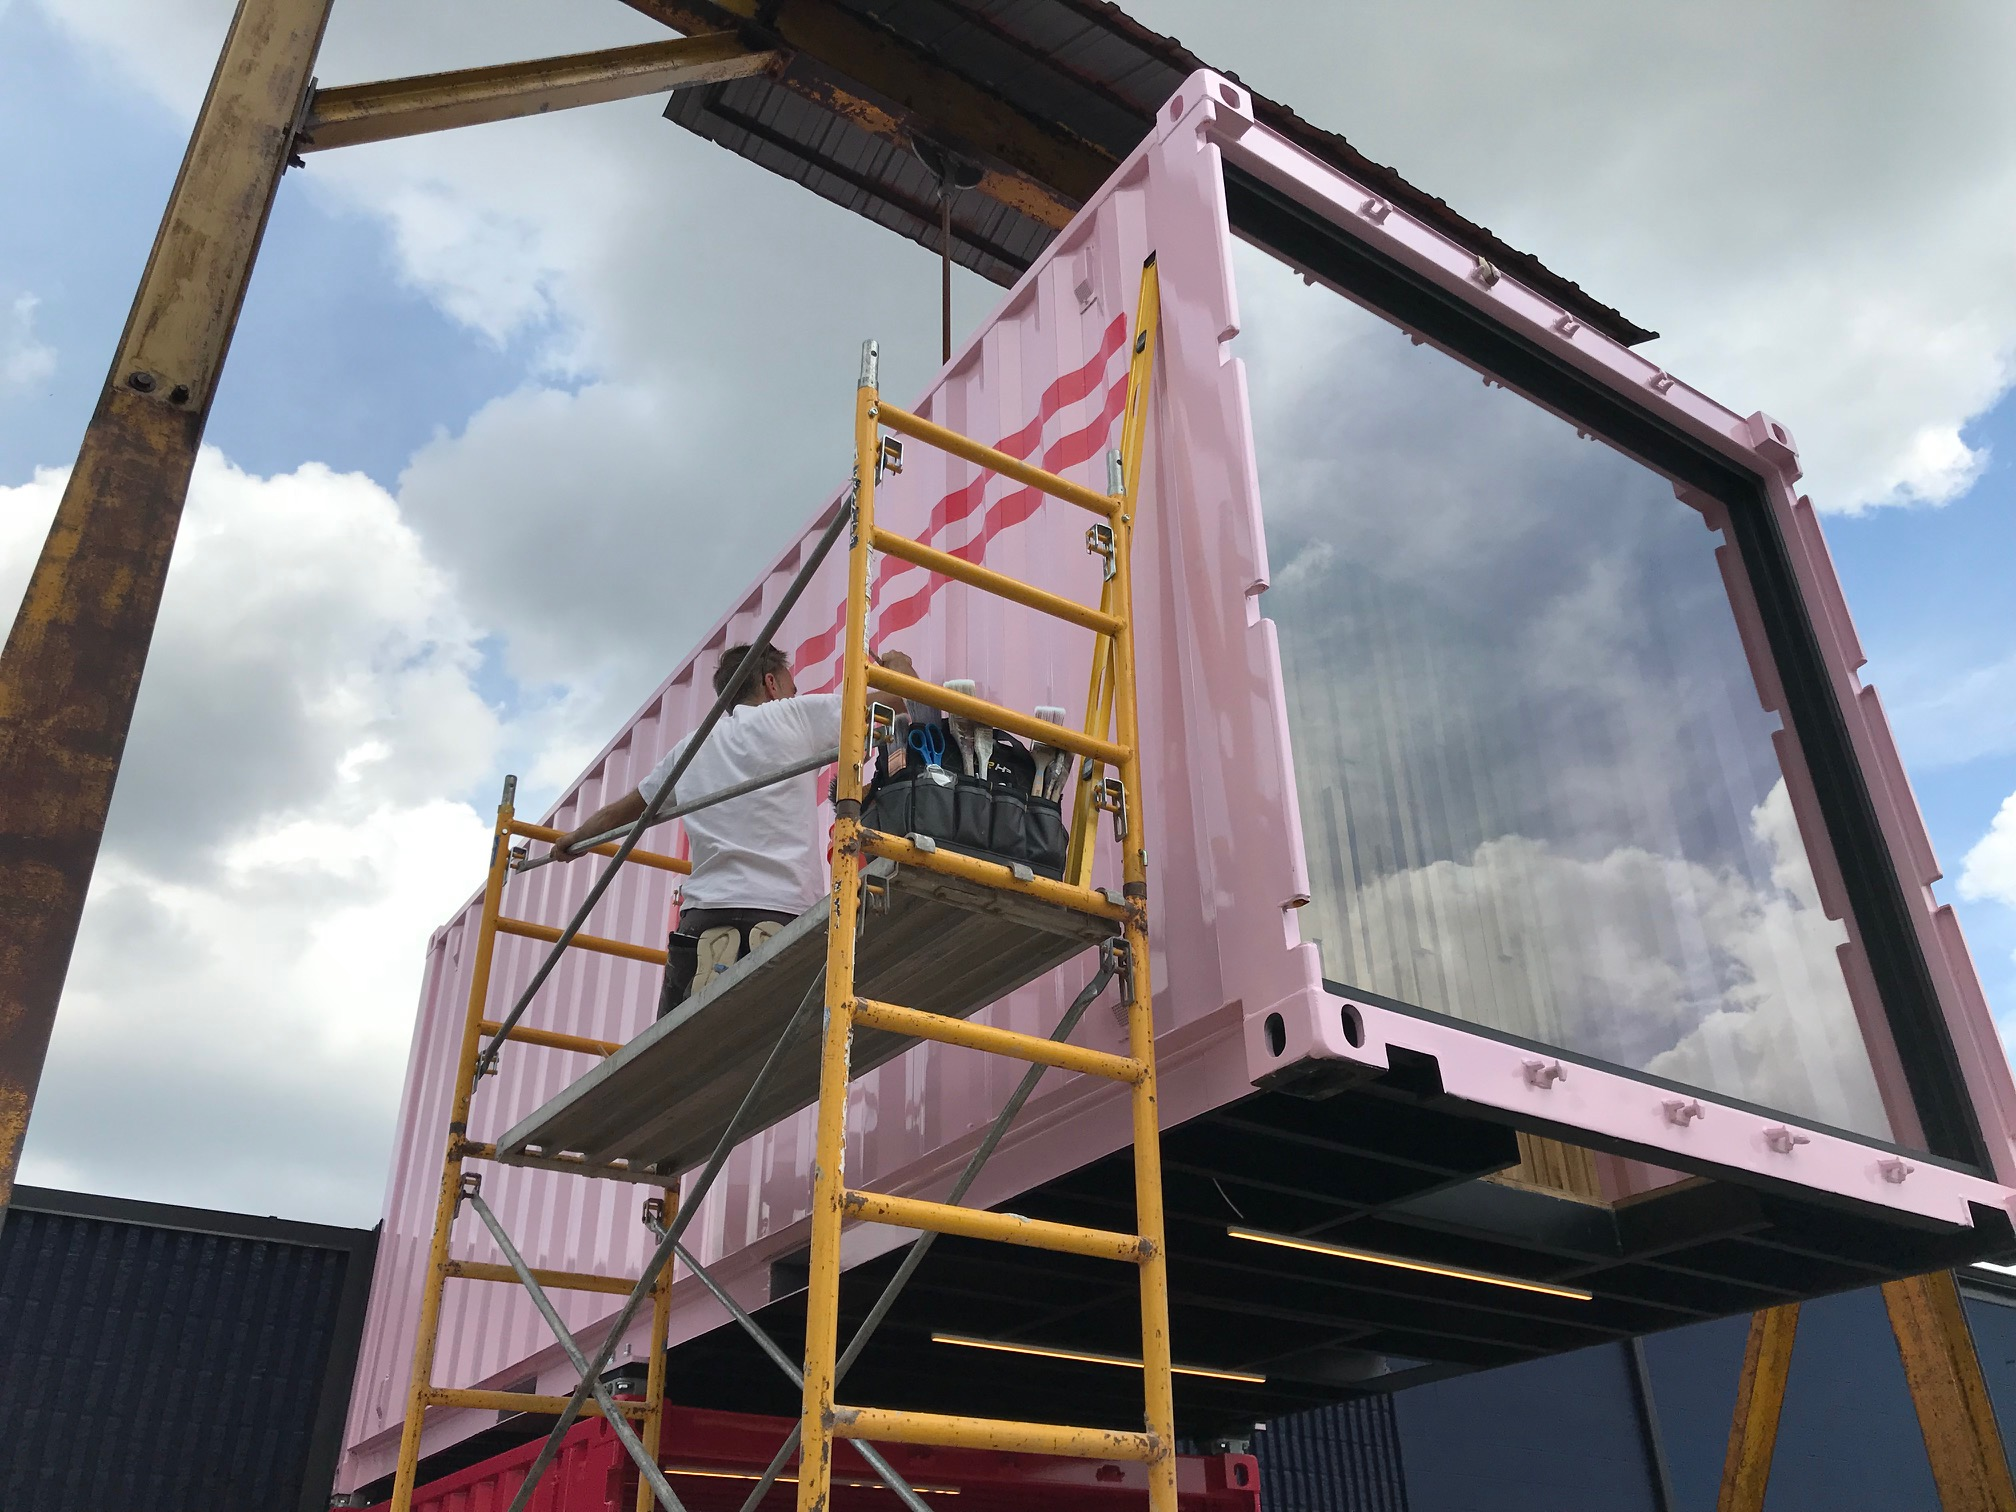 Signage being painted on the entry shipping container -